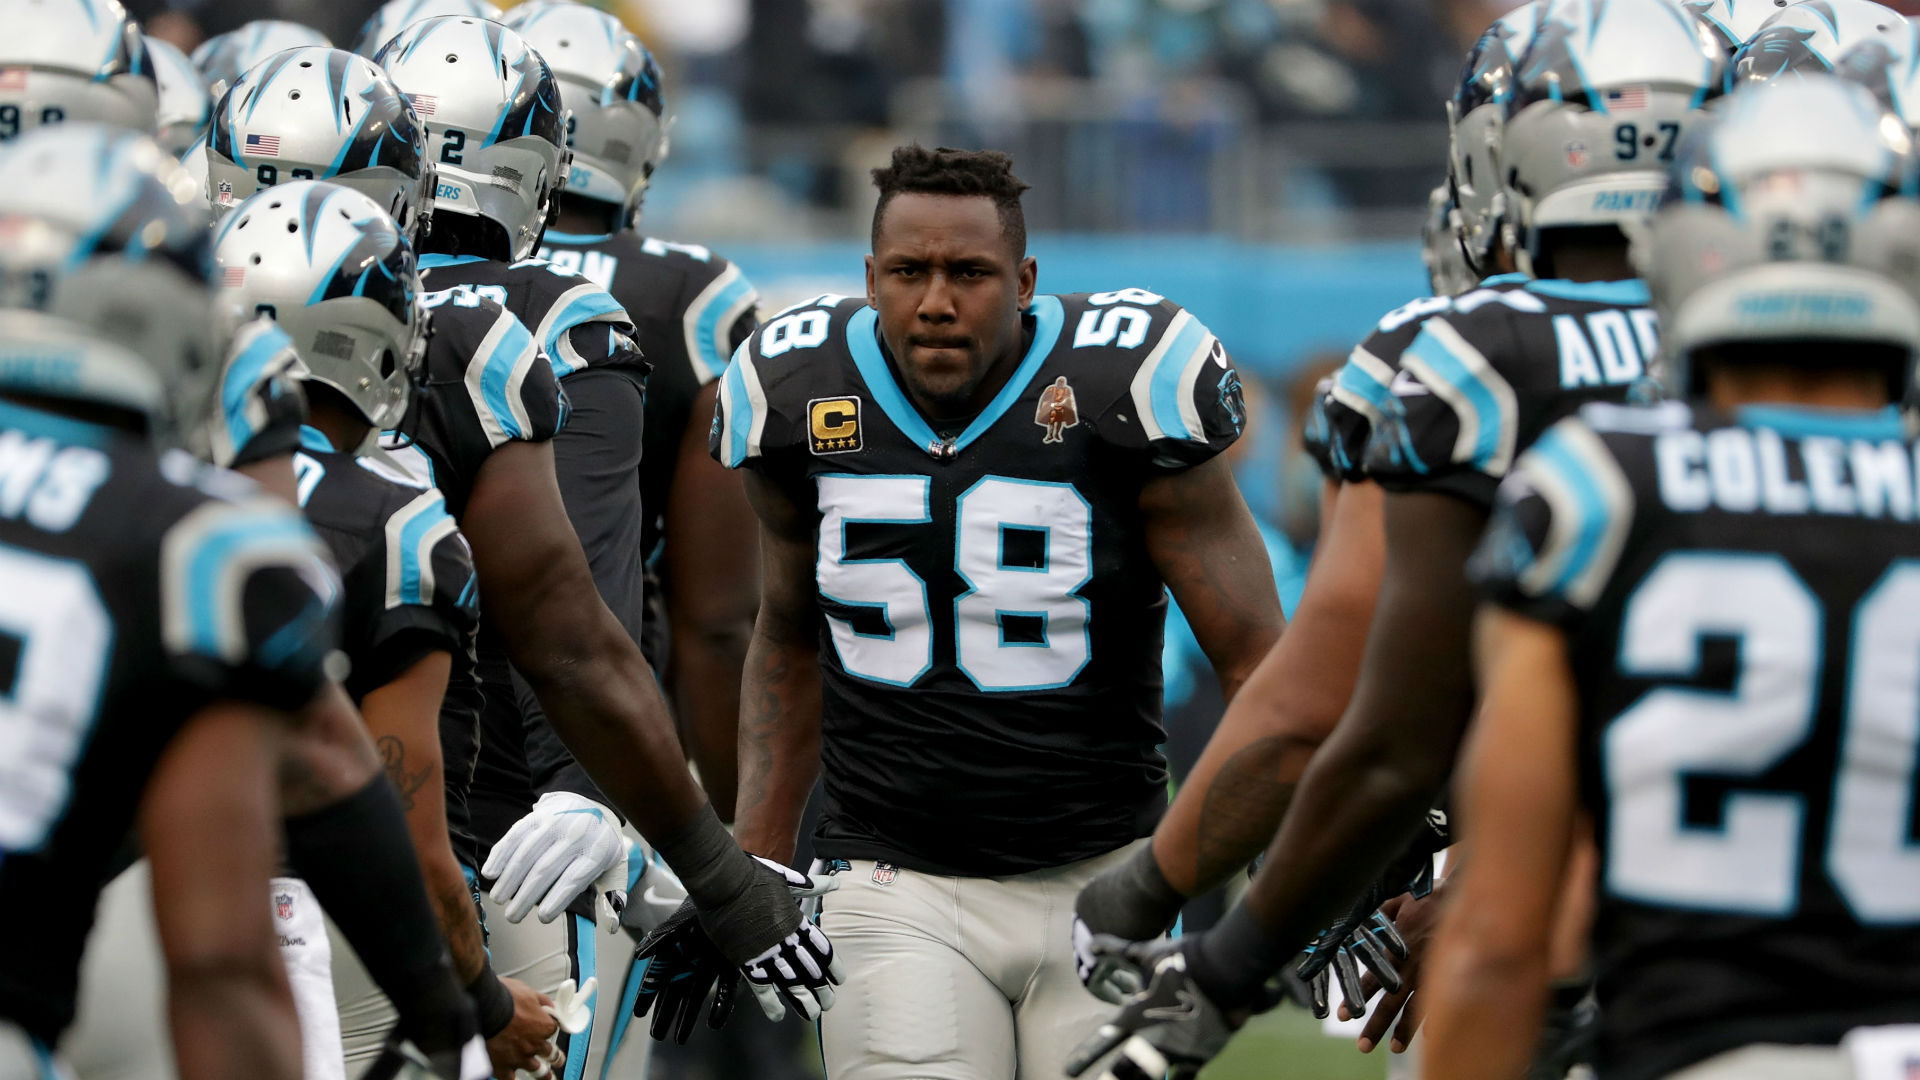 Thomas Davis visibly upset after hit injures Davante Adams